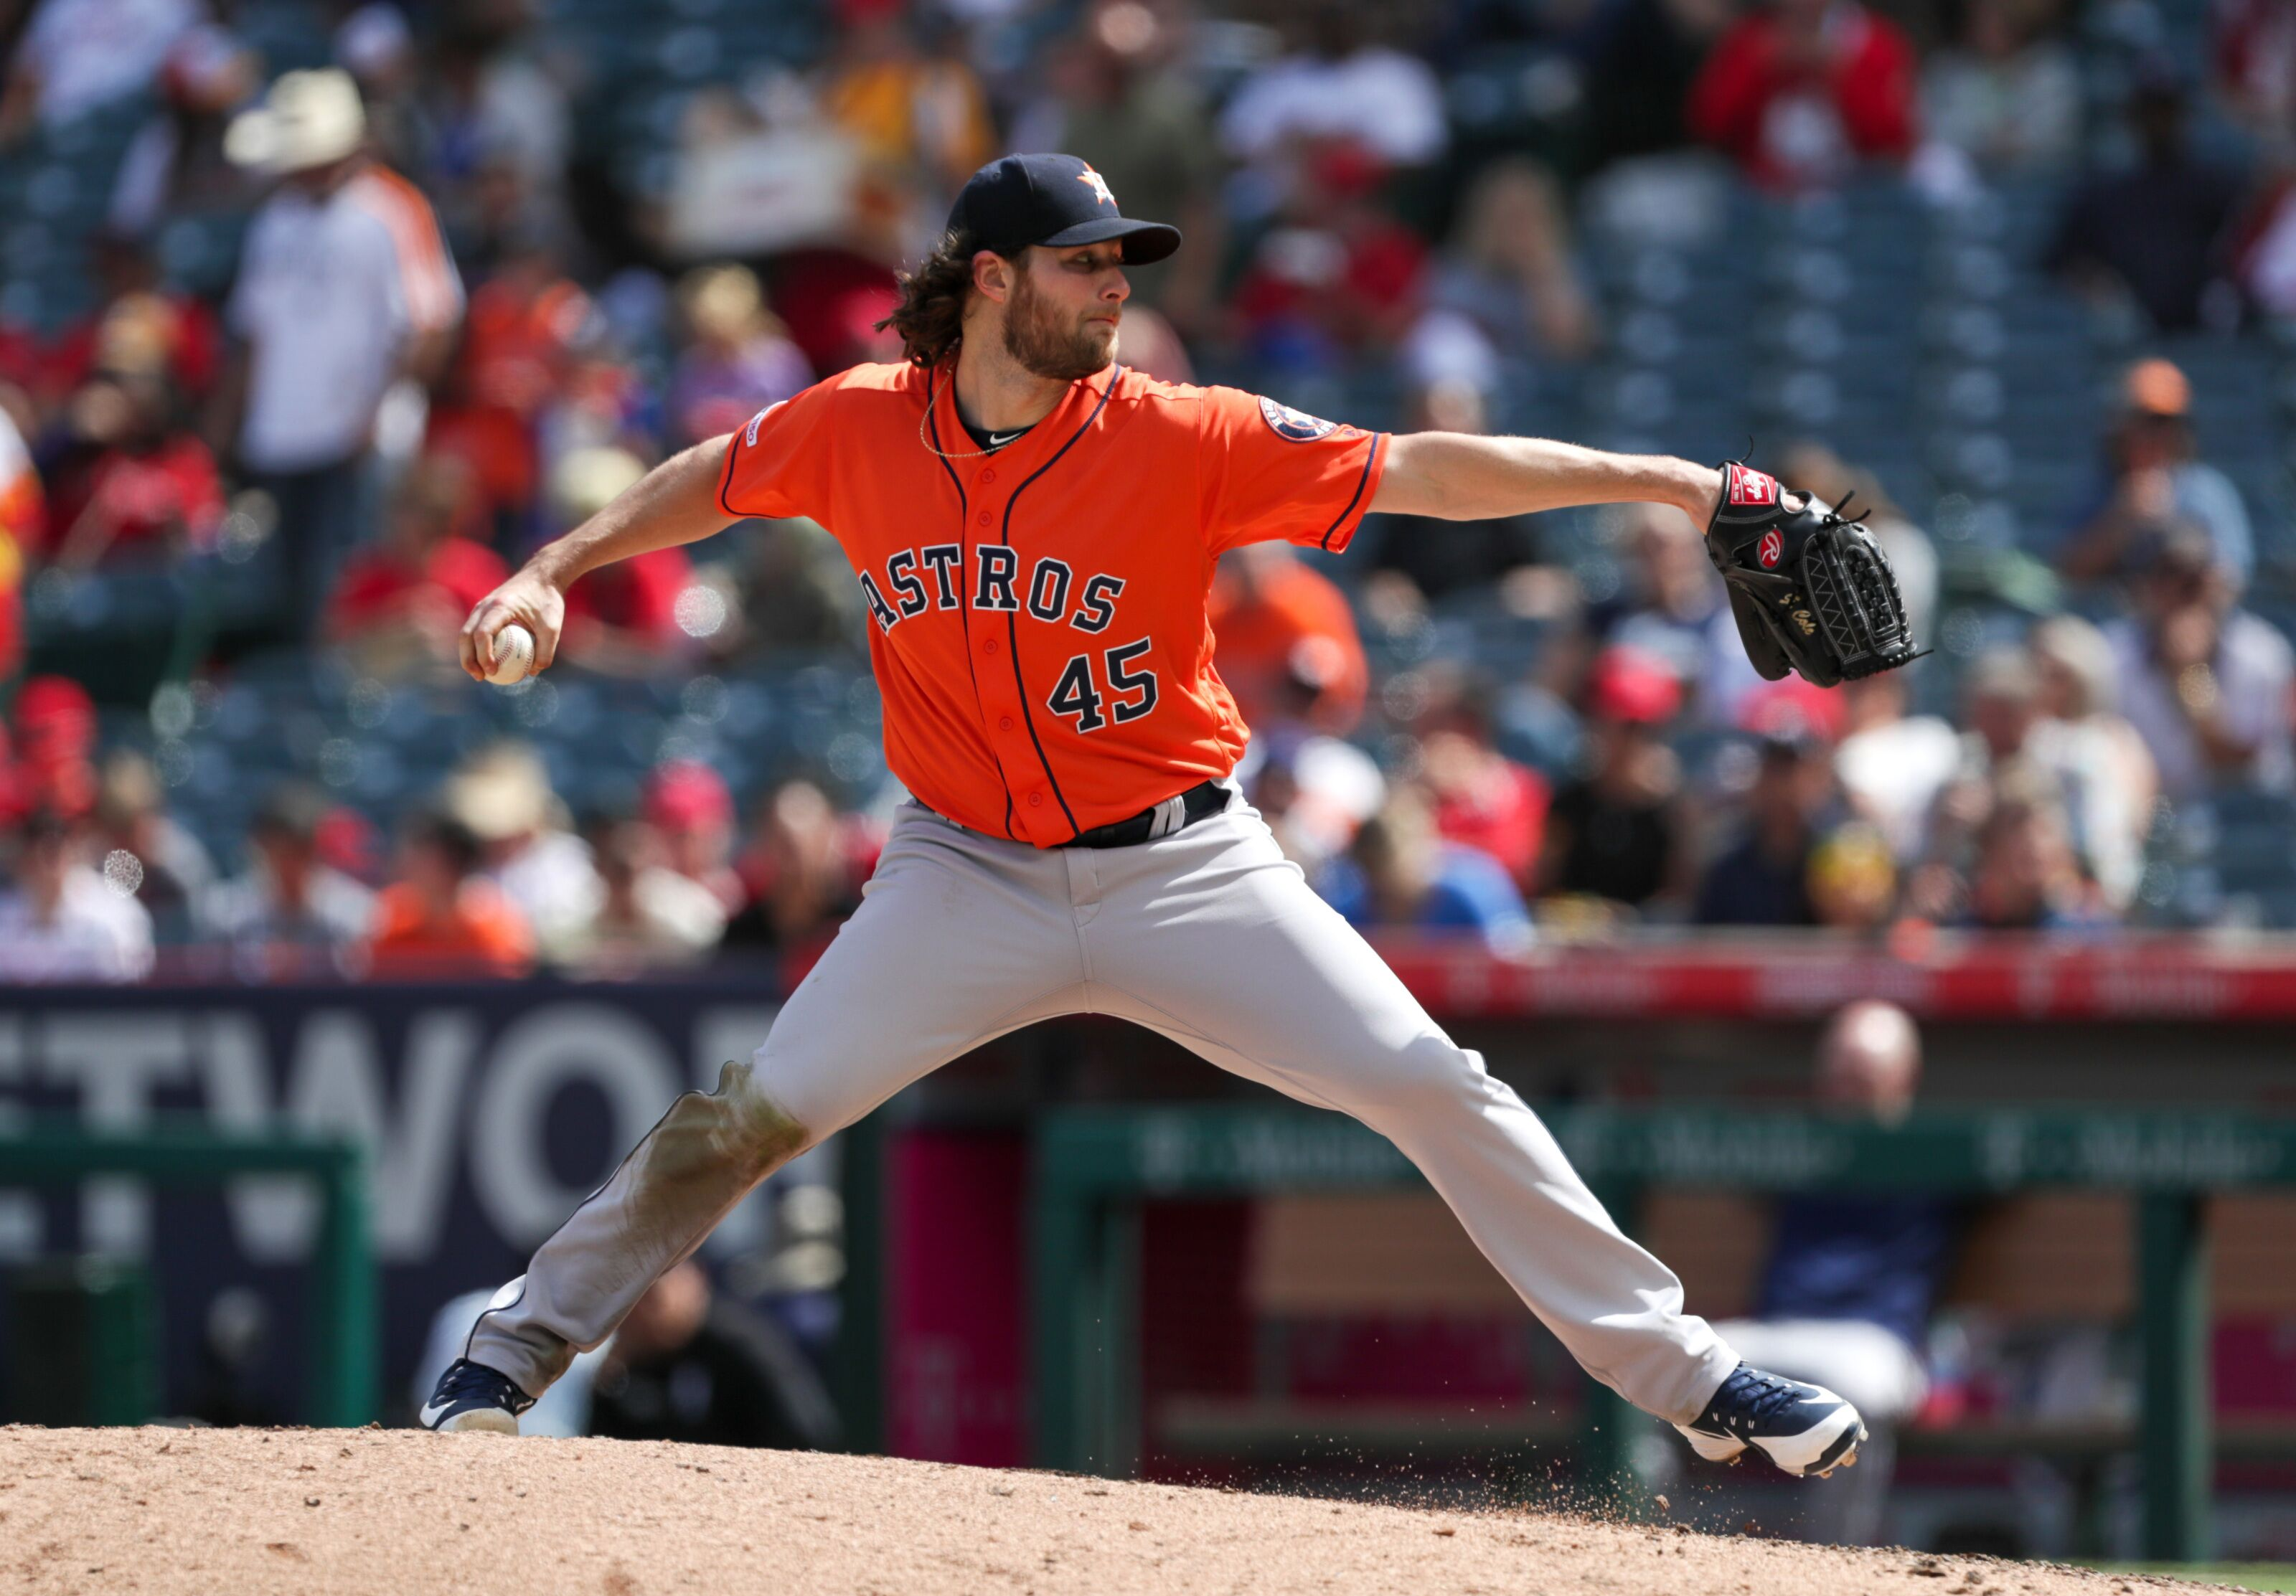 Chicago Cubs: In another world, Gerrit Cole would be a perfect fit